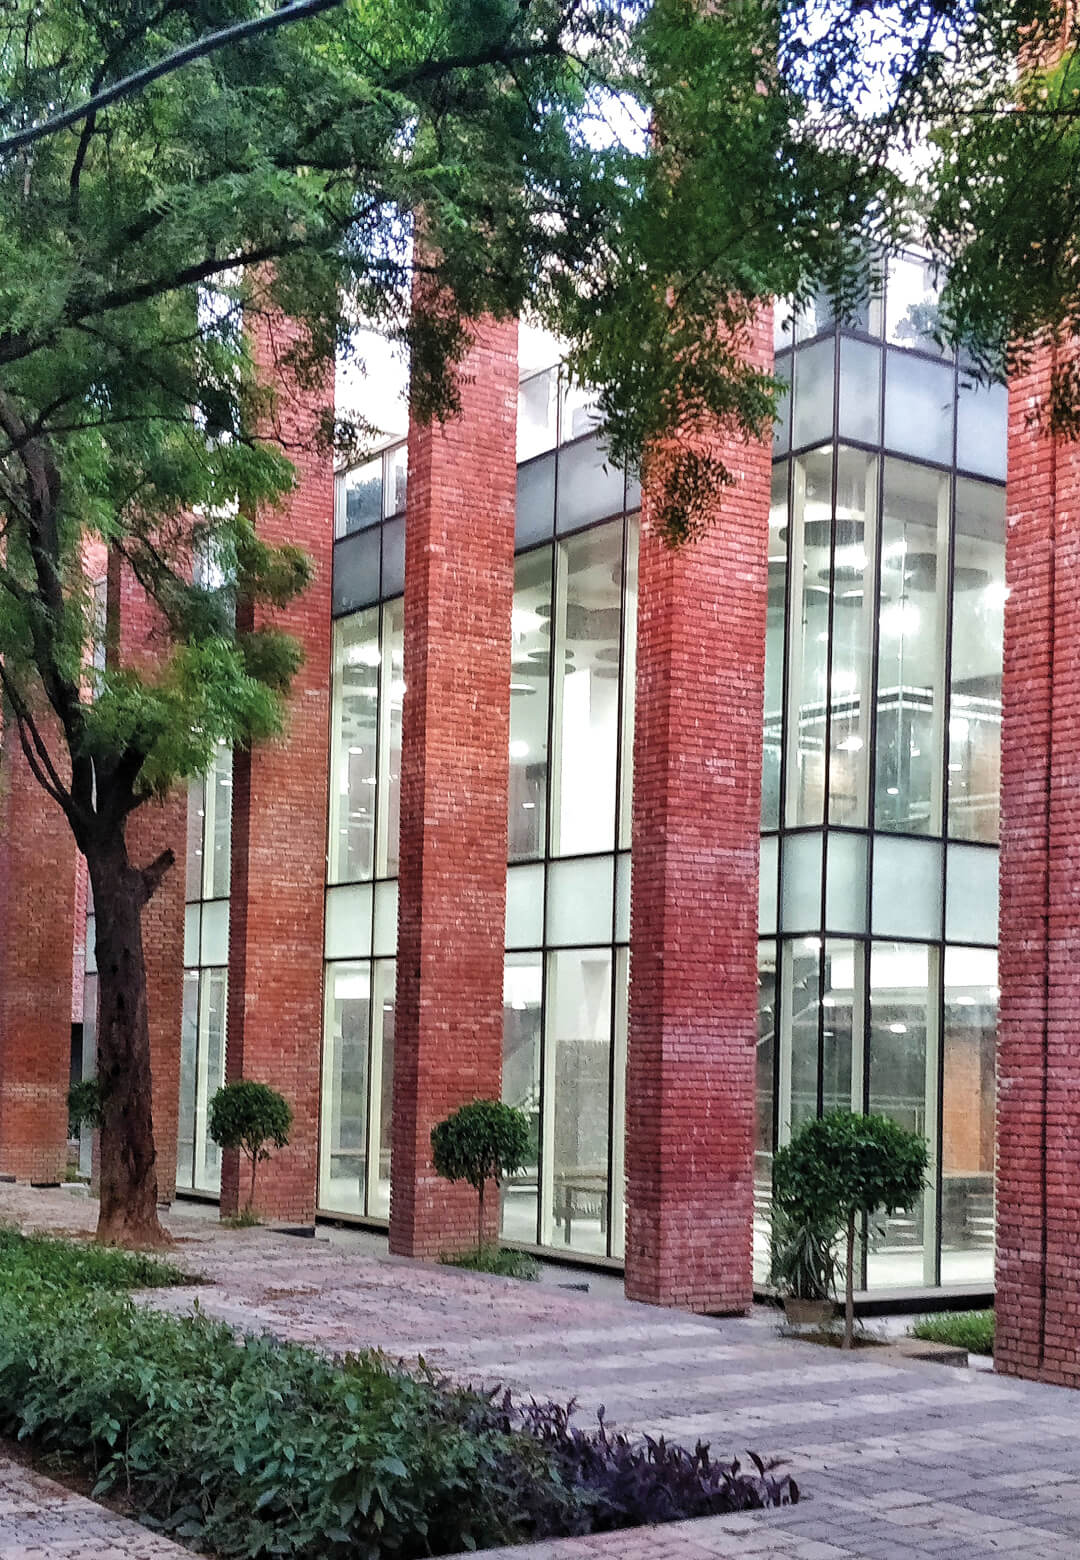 The Lalit Suri Hospitality Institute aims to provide a world-class learning experience to aspiring students | The Lalit Suri Hospitality Institute | Morphogenesis | STIRworld